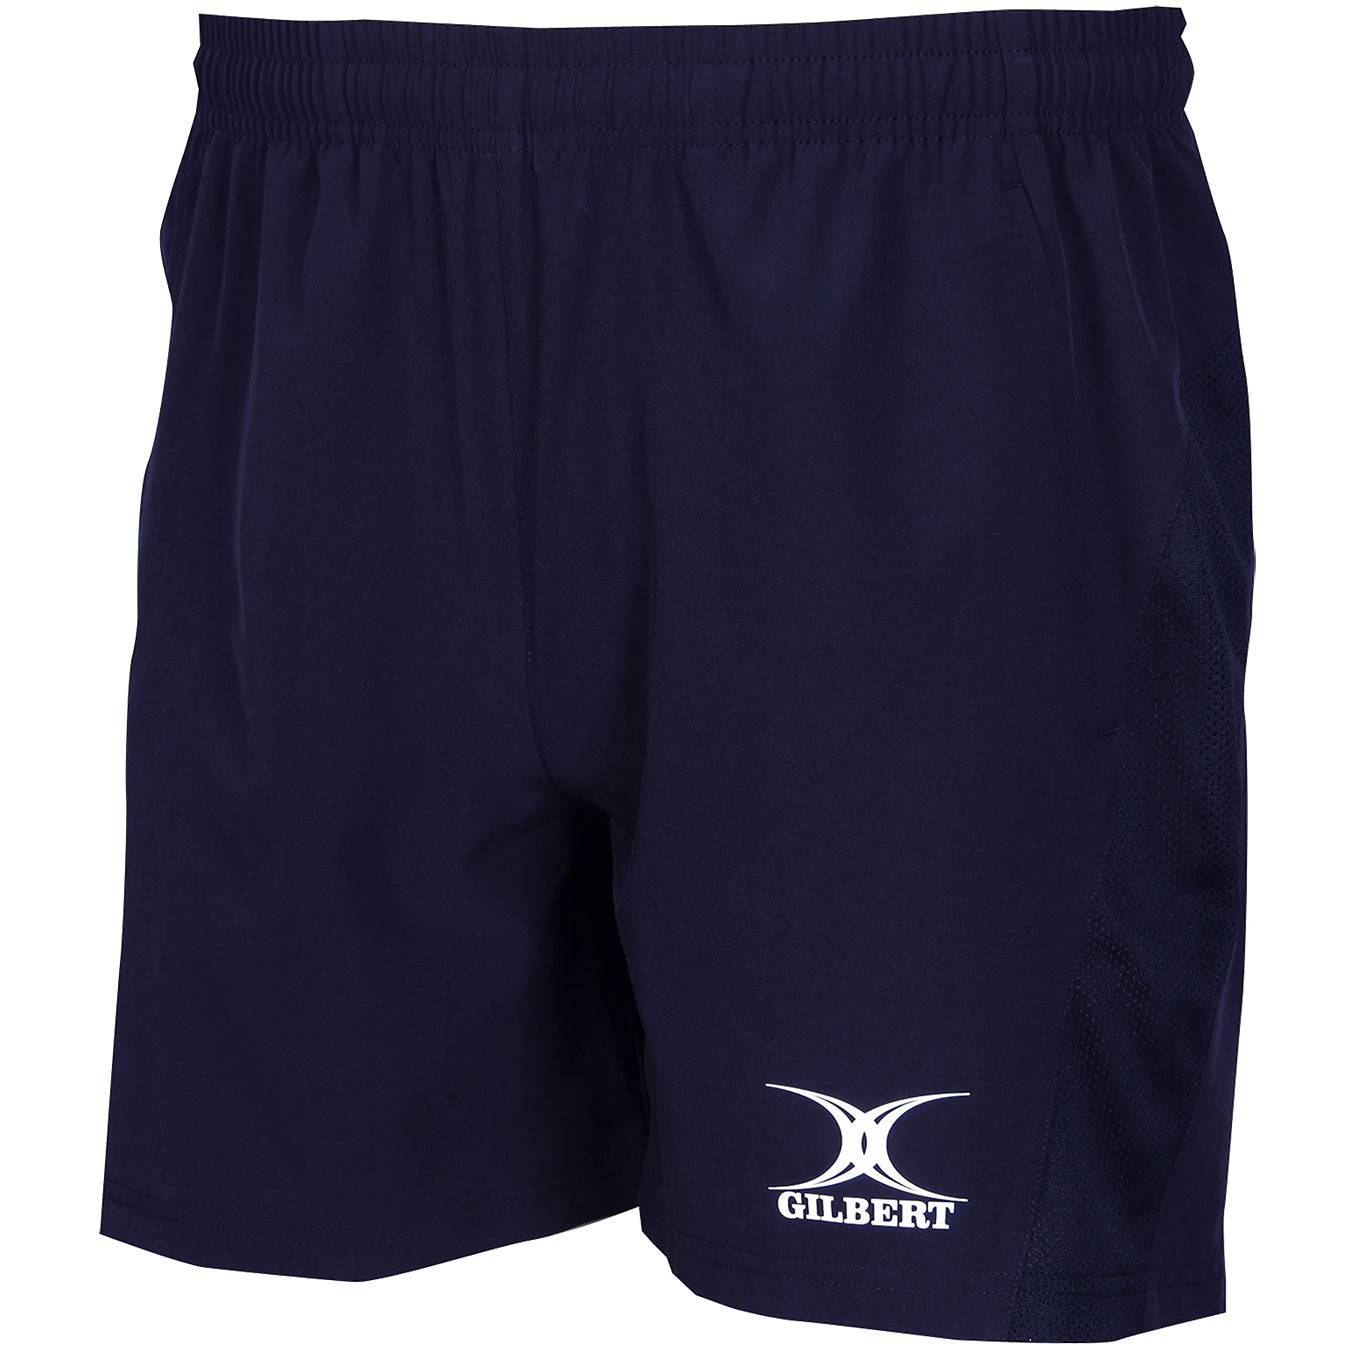 I.S.A Gilbert Leisure Short Women